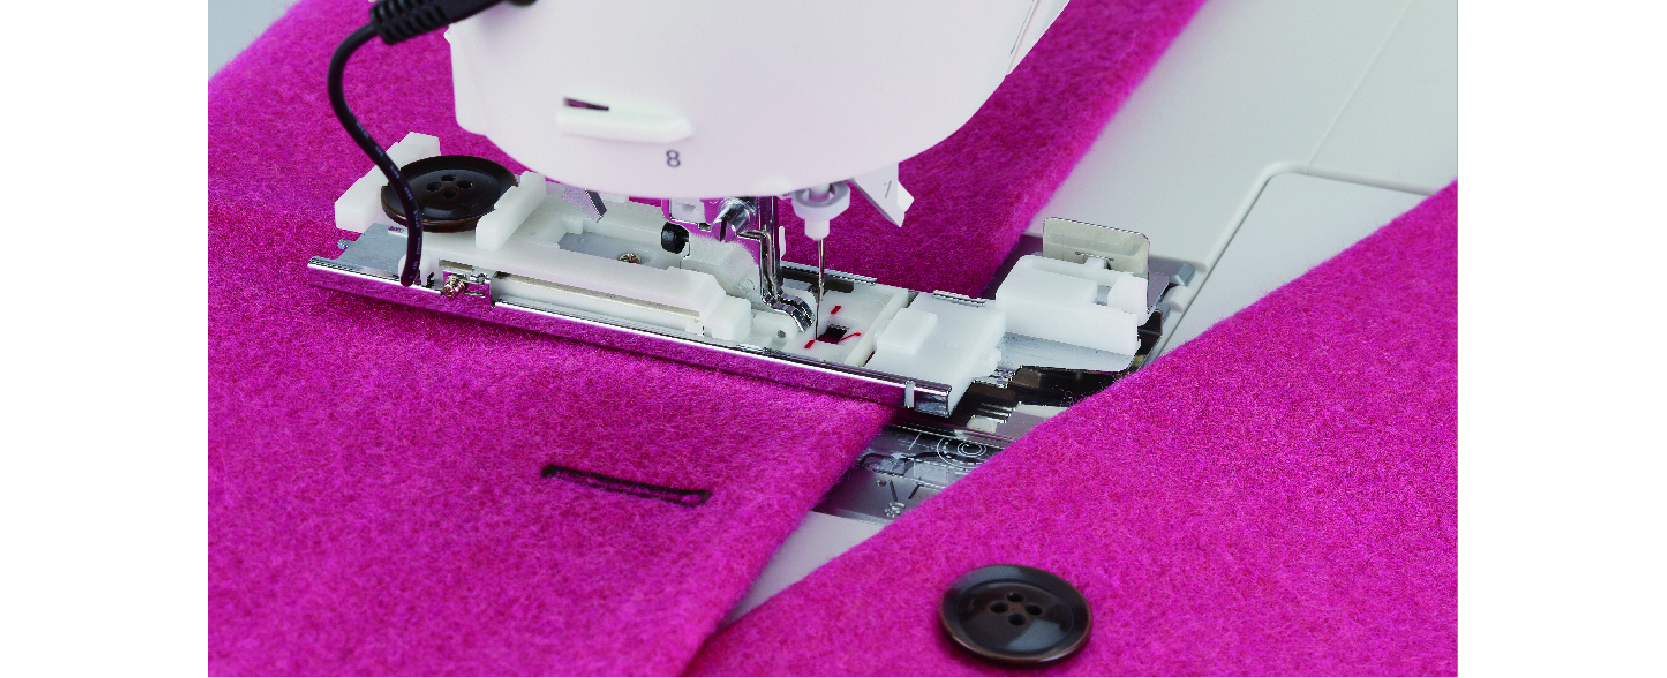 Buttonhole sewing with clamping plate and sensor